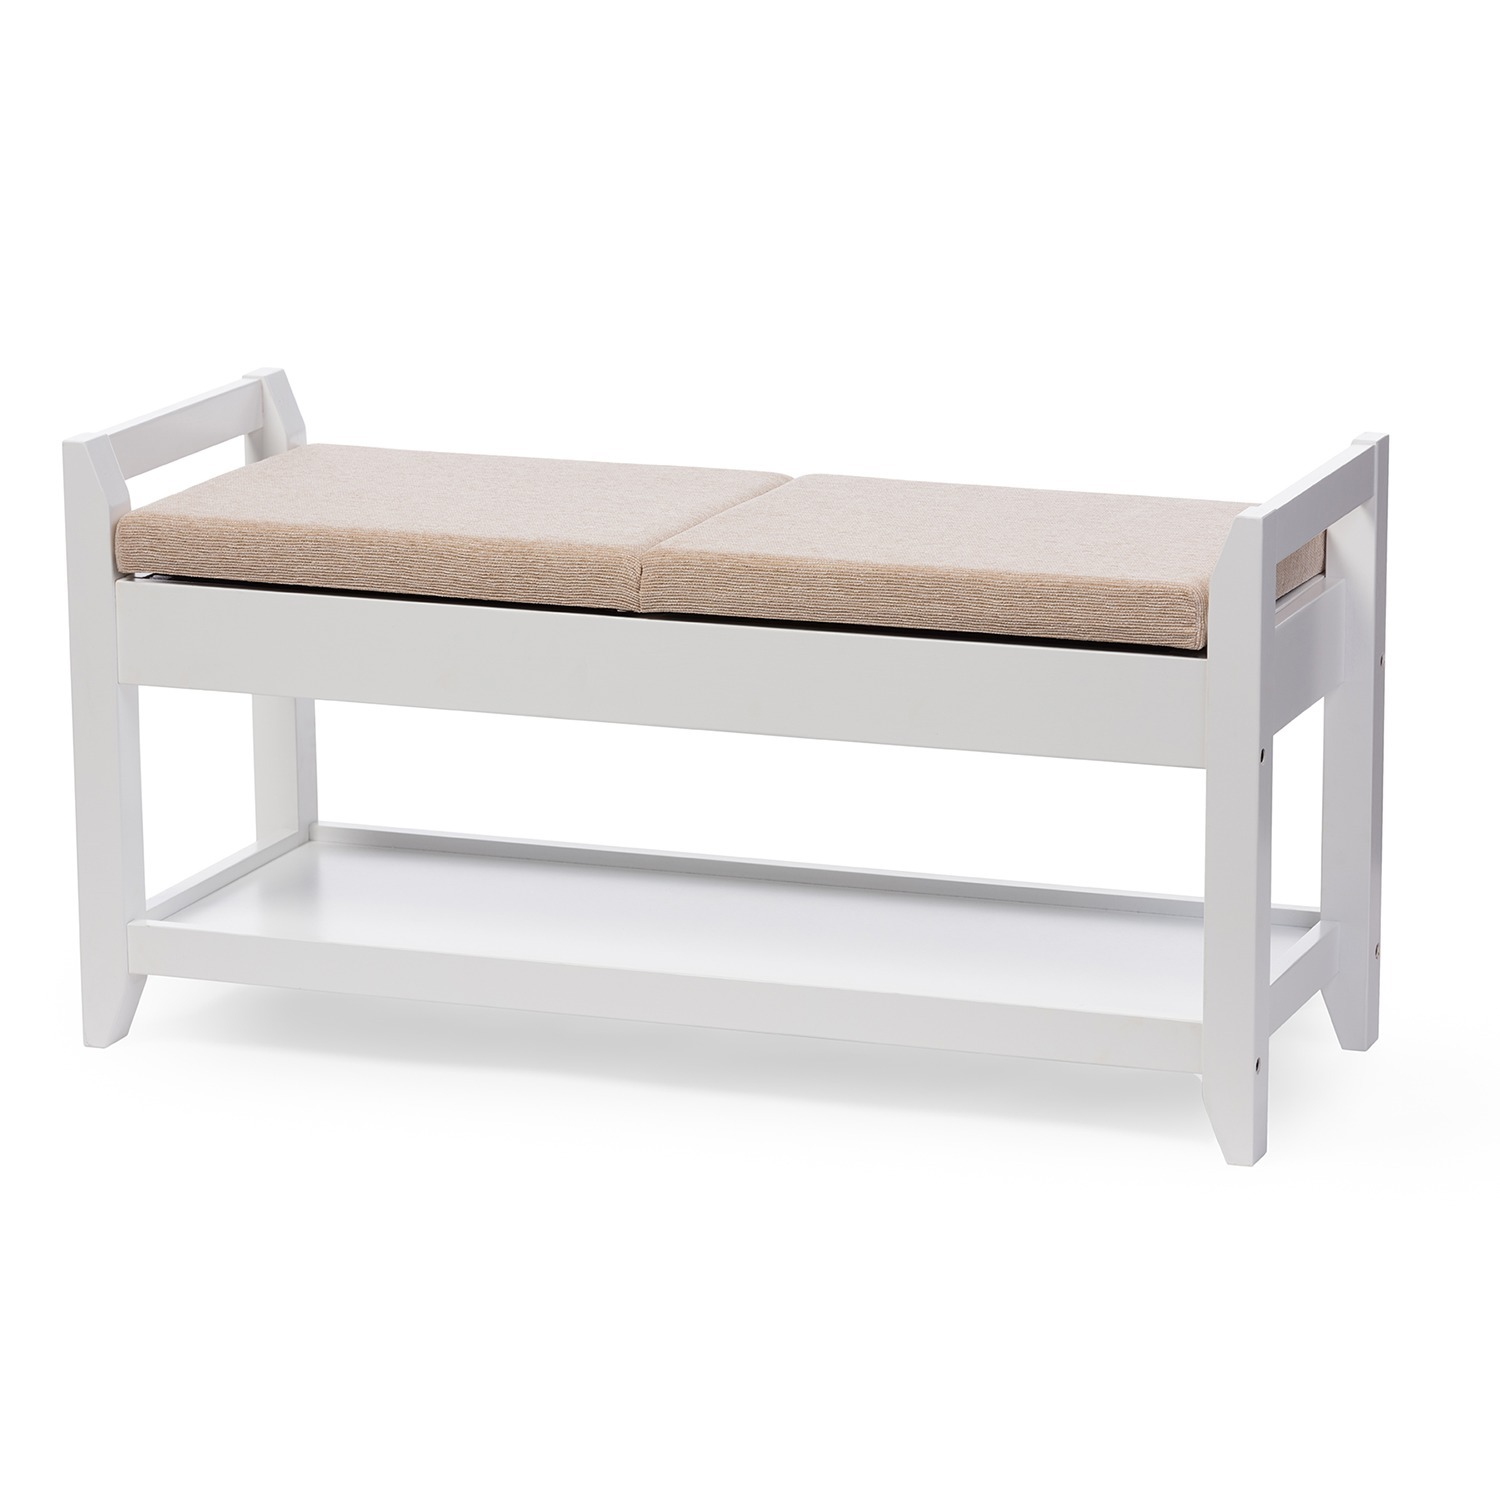 Baxton Studio Maudie Modern And Contemporary White Wooden Shoe Storage Seating Bench With Taupe